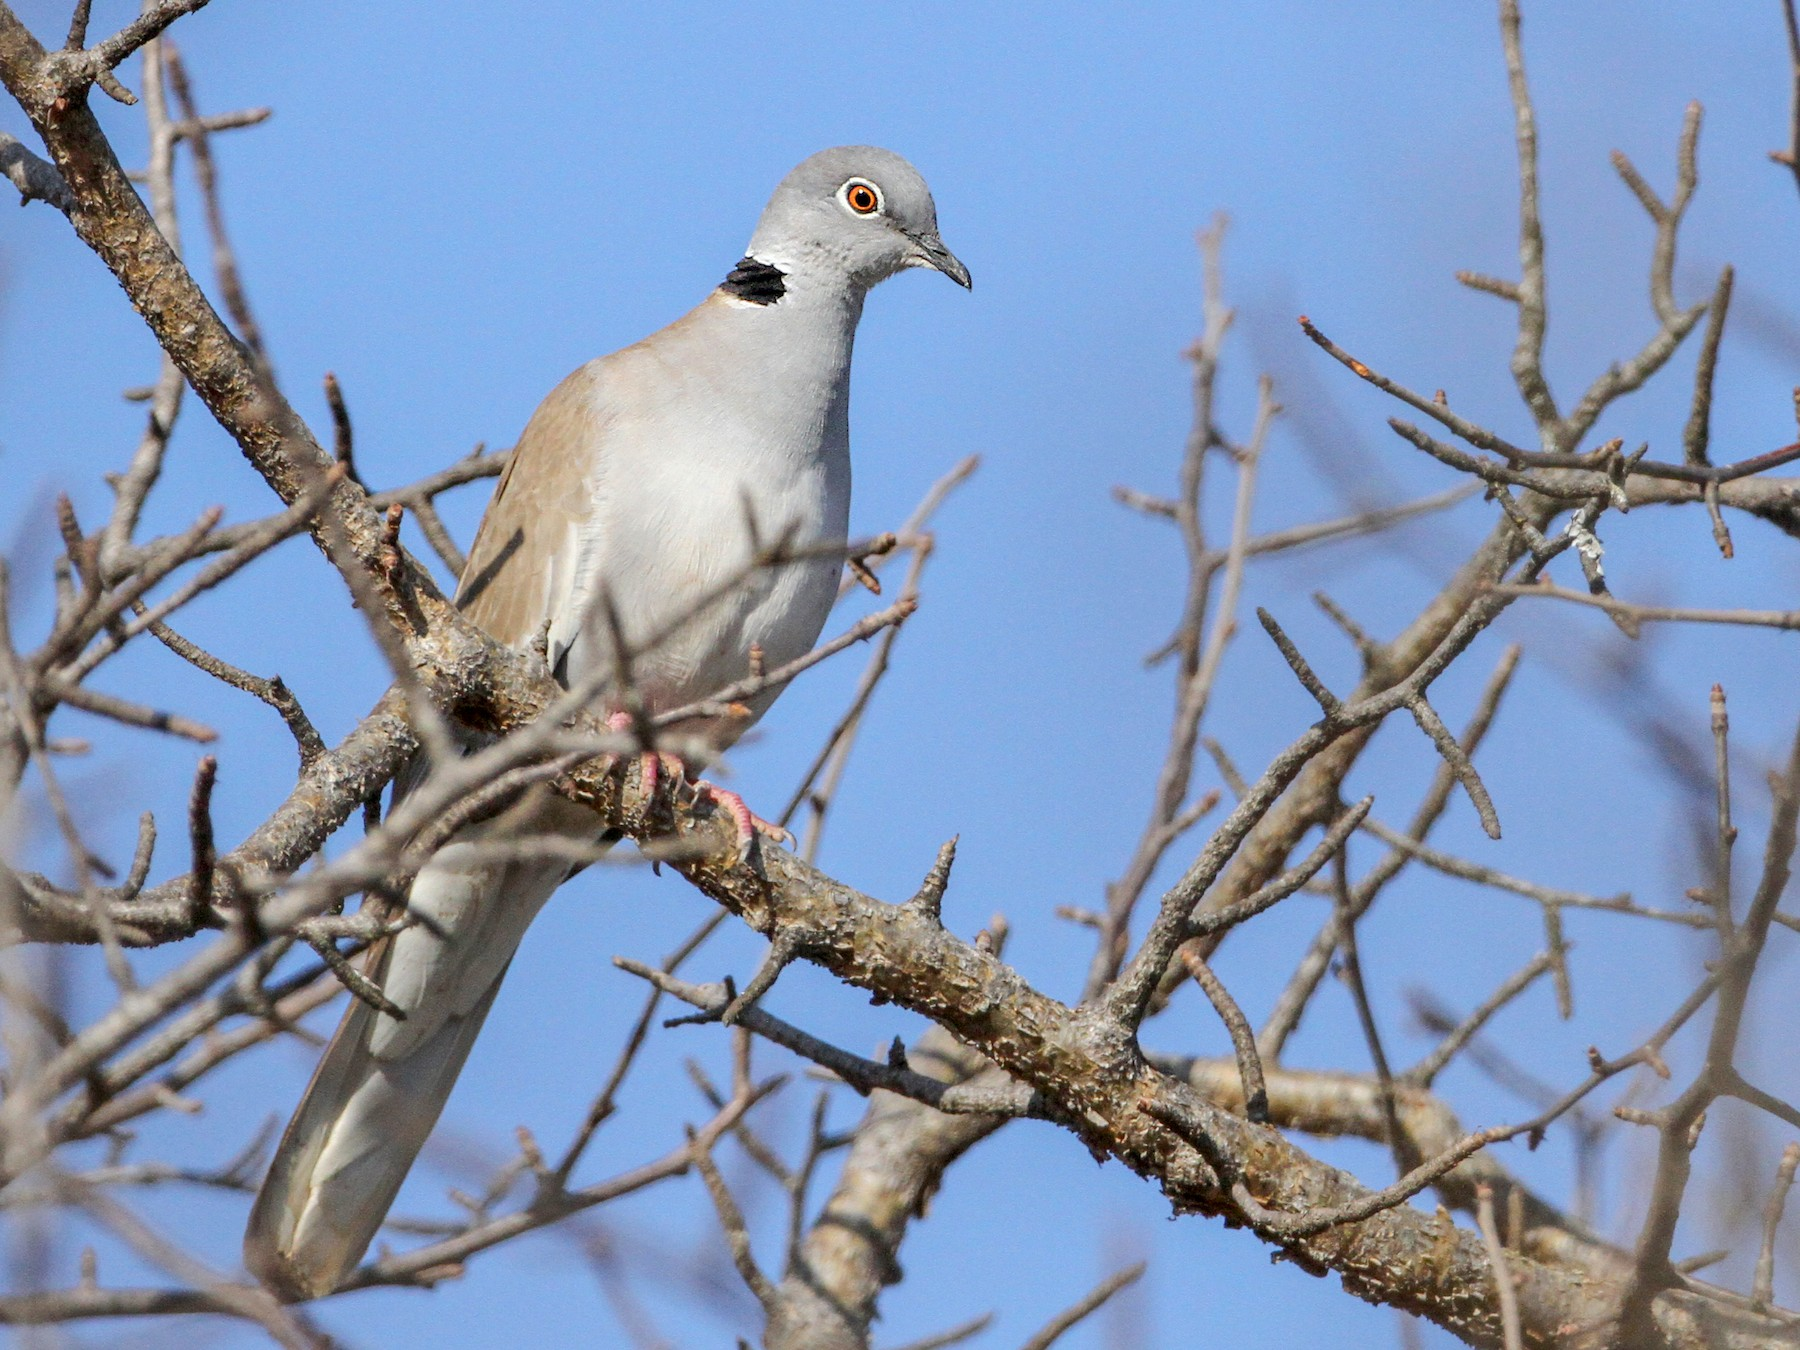 White-winged Collared-Dove - Luke Seitz